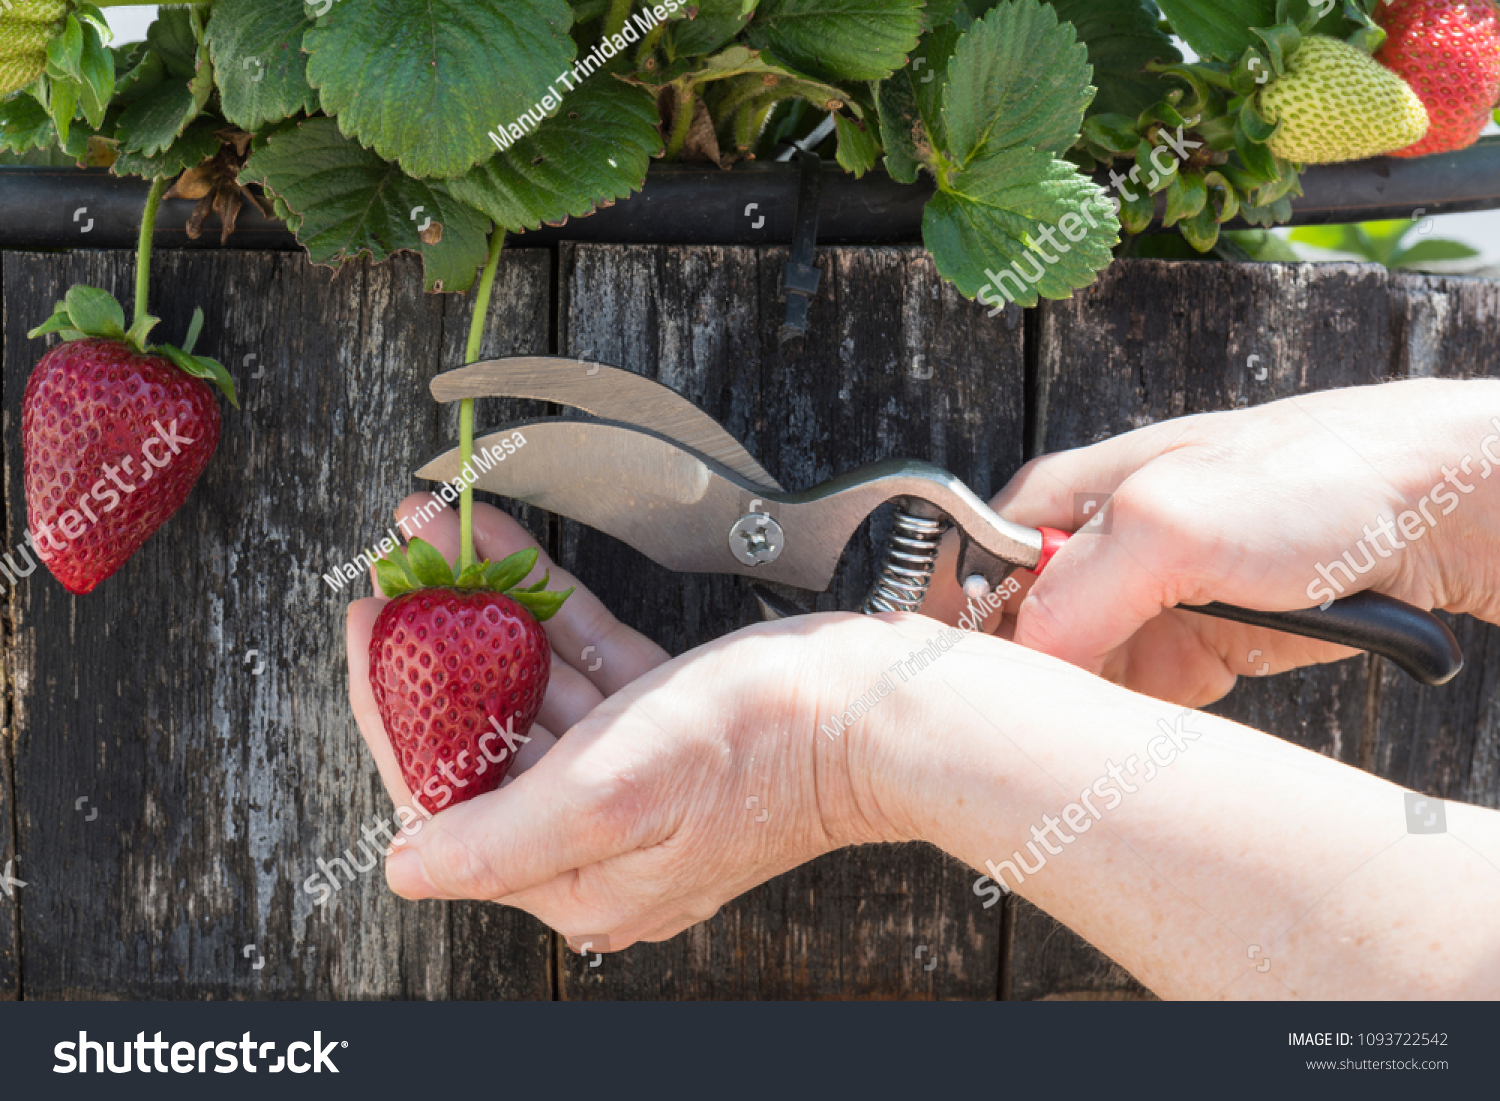 The person harvest strawberries from the plant with the help of scissors